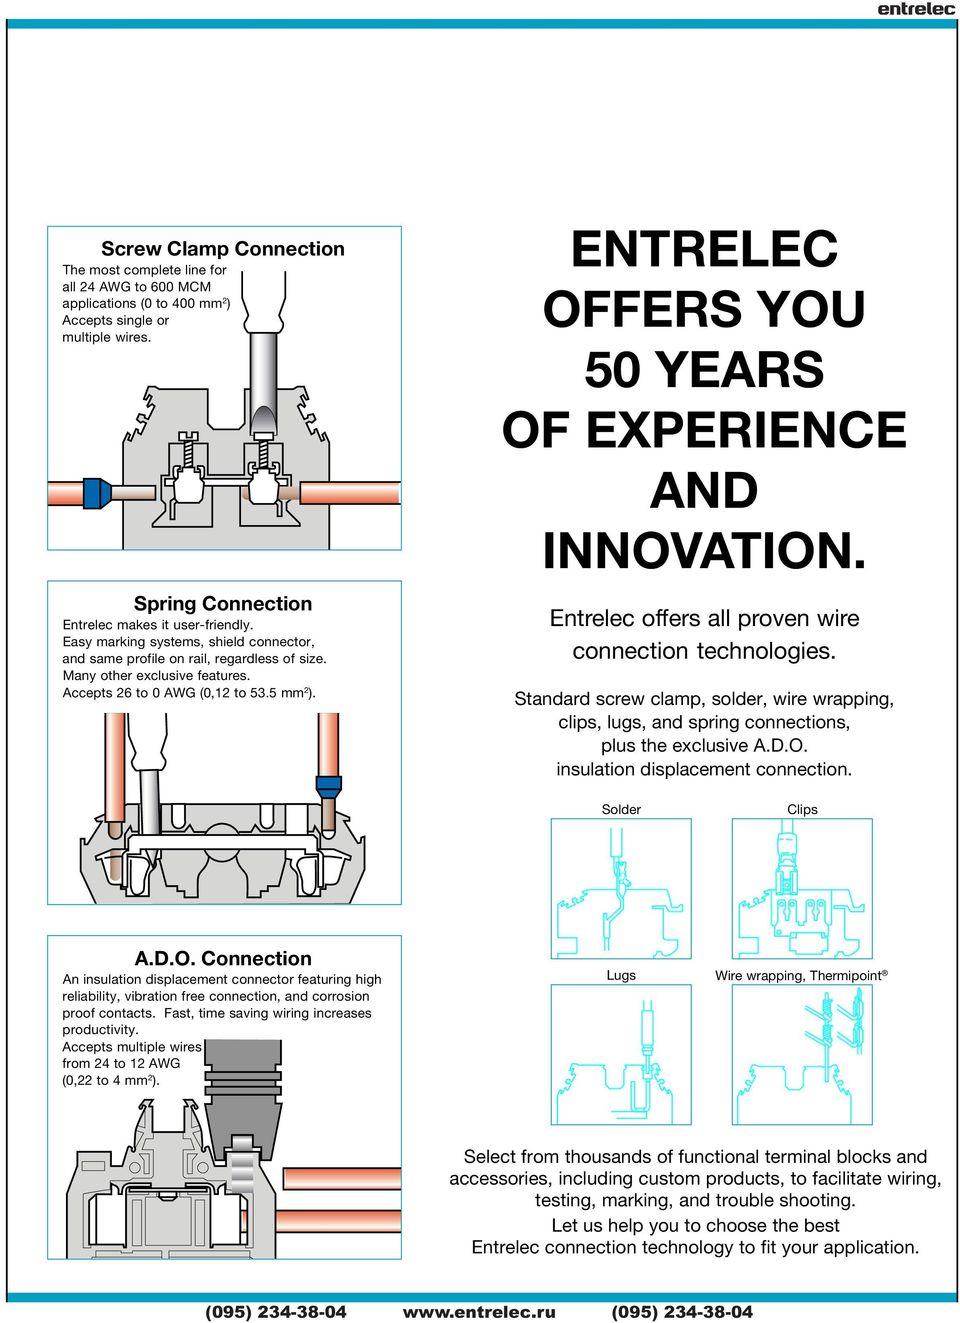 ENTRELEC OFFERS YOU 50 YEARS OF EXPERIENCE AND INNOVATION. Entrelec offers all proven wire technologies. Standard screw clamp, solder, wire wrapping, clips, lugs, and spring s, plus the exclusive A.D.O. insulation displacement.